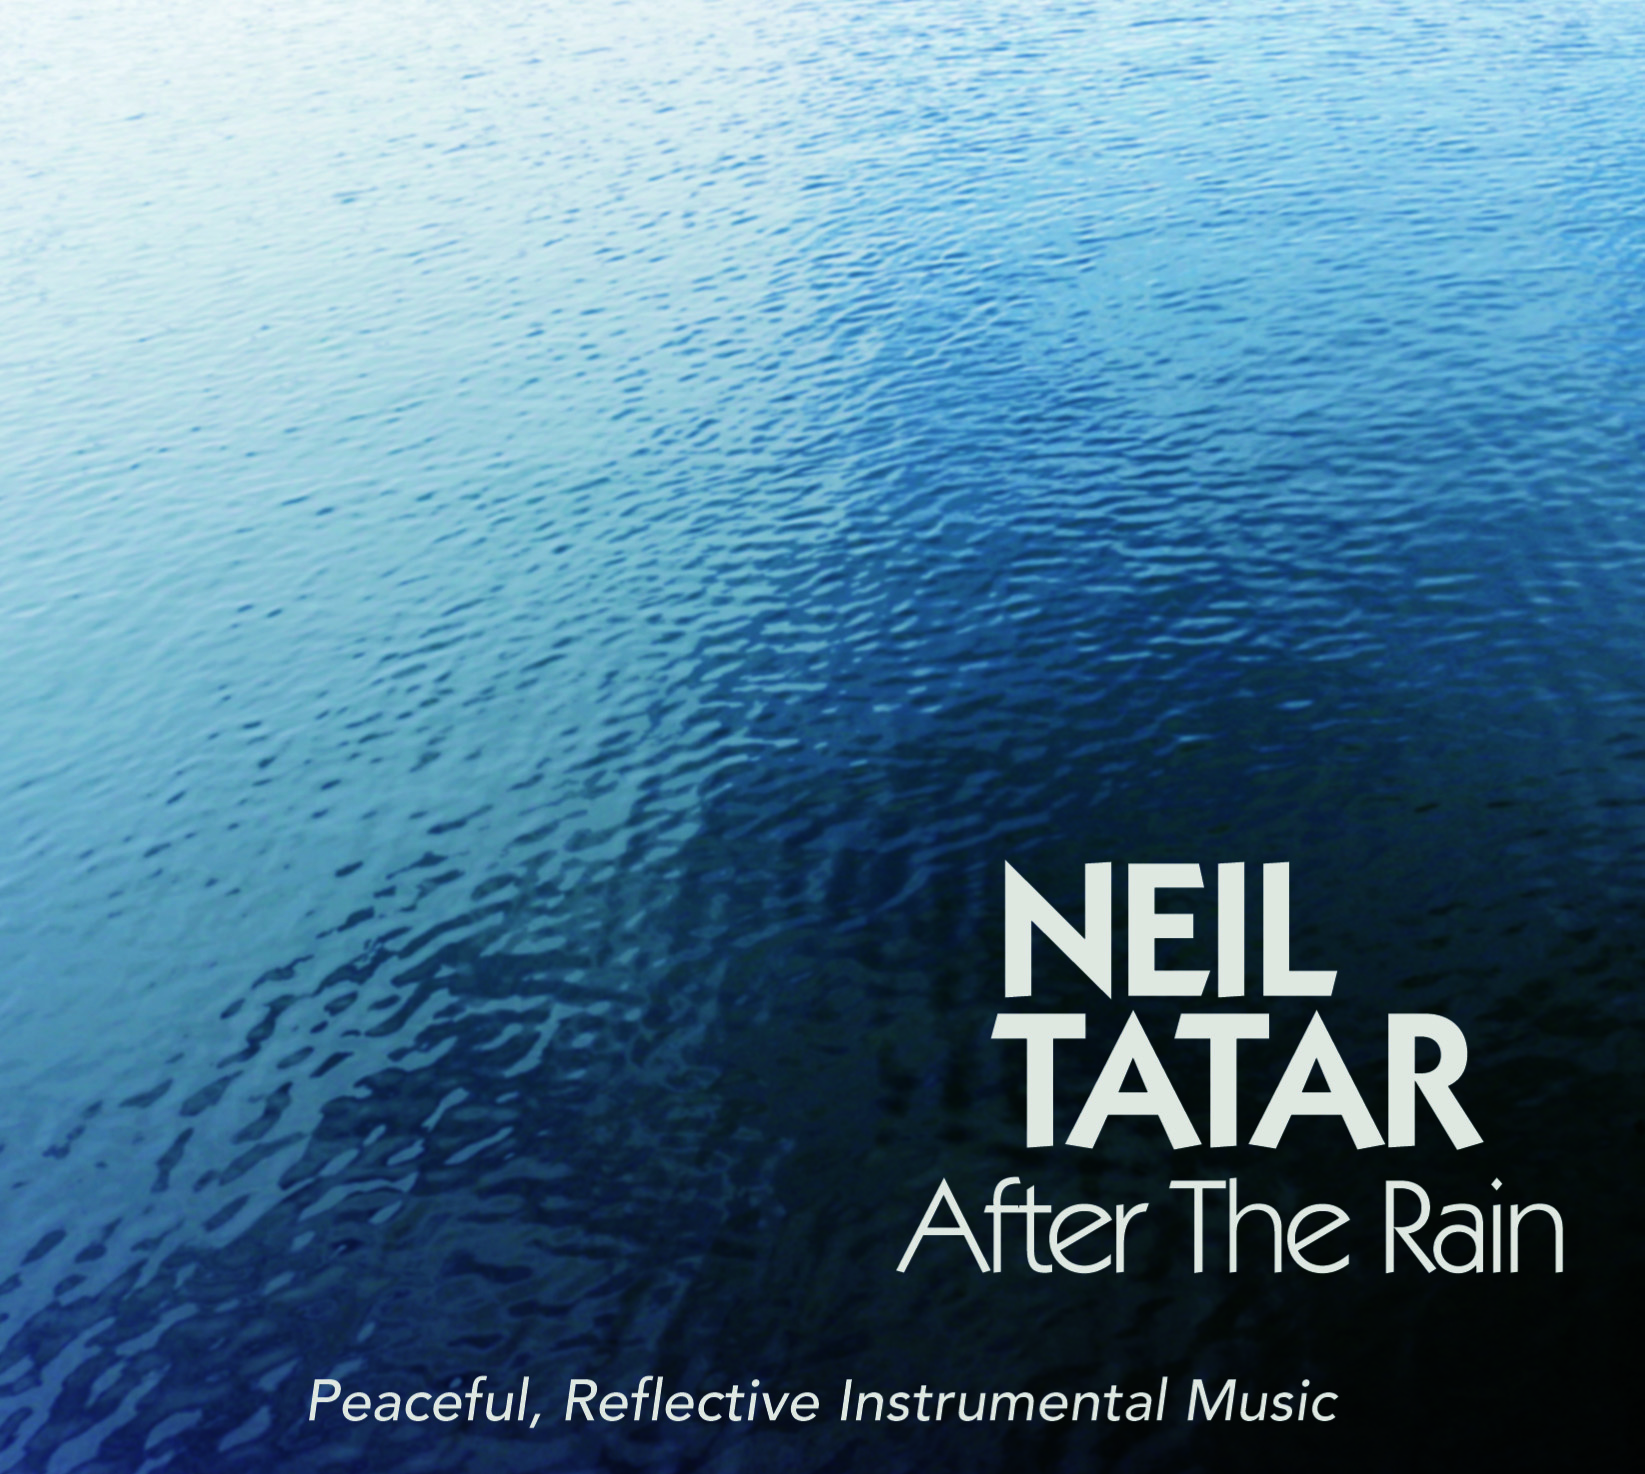 After the Rain Album Cover